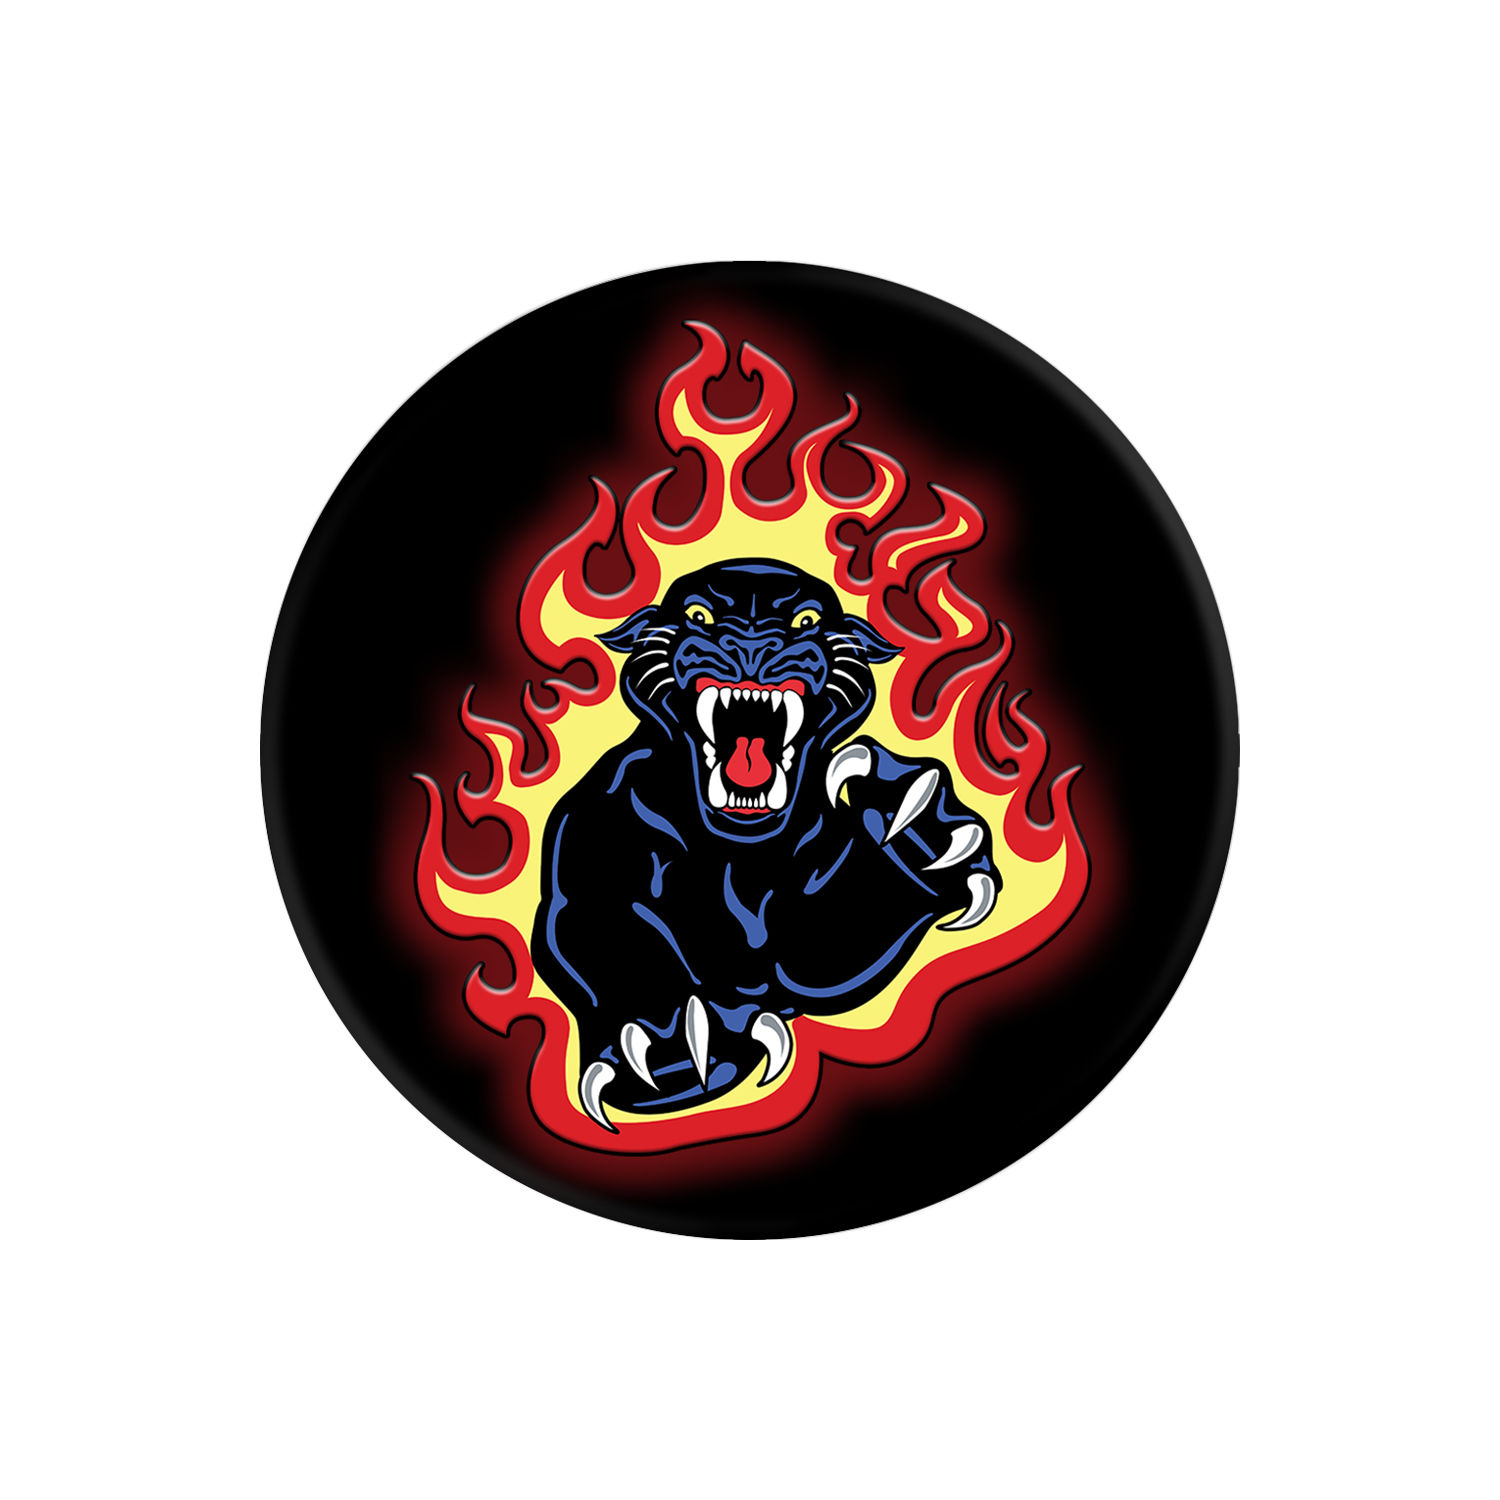 Popsockets Panther Flames Expanding Stand and Grip